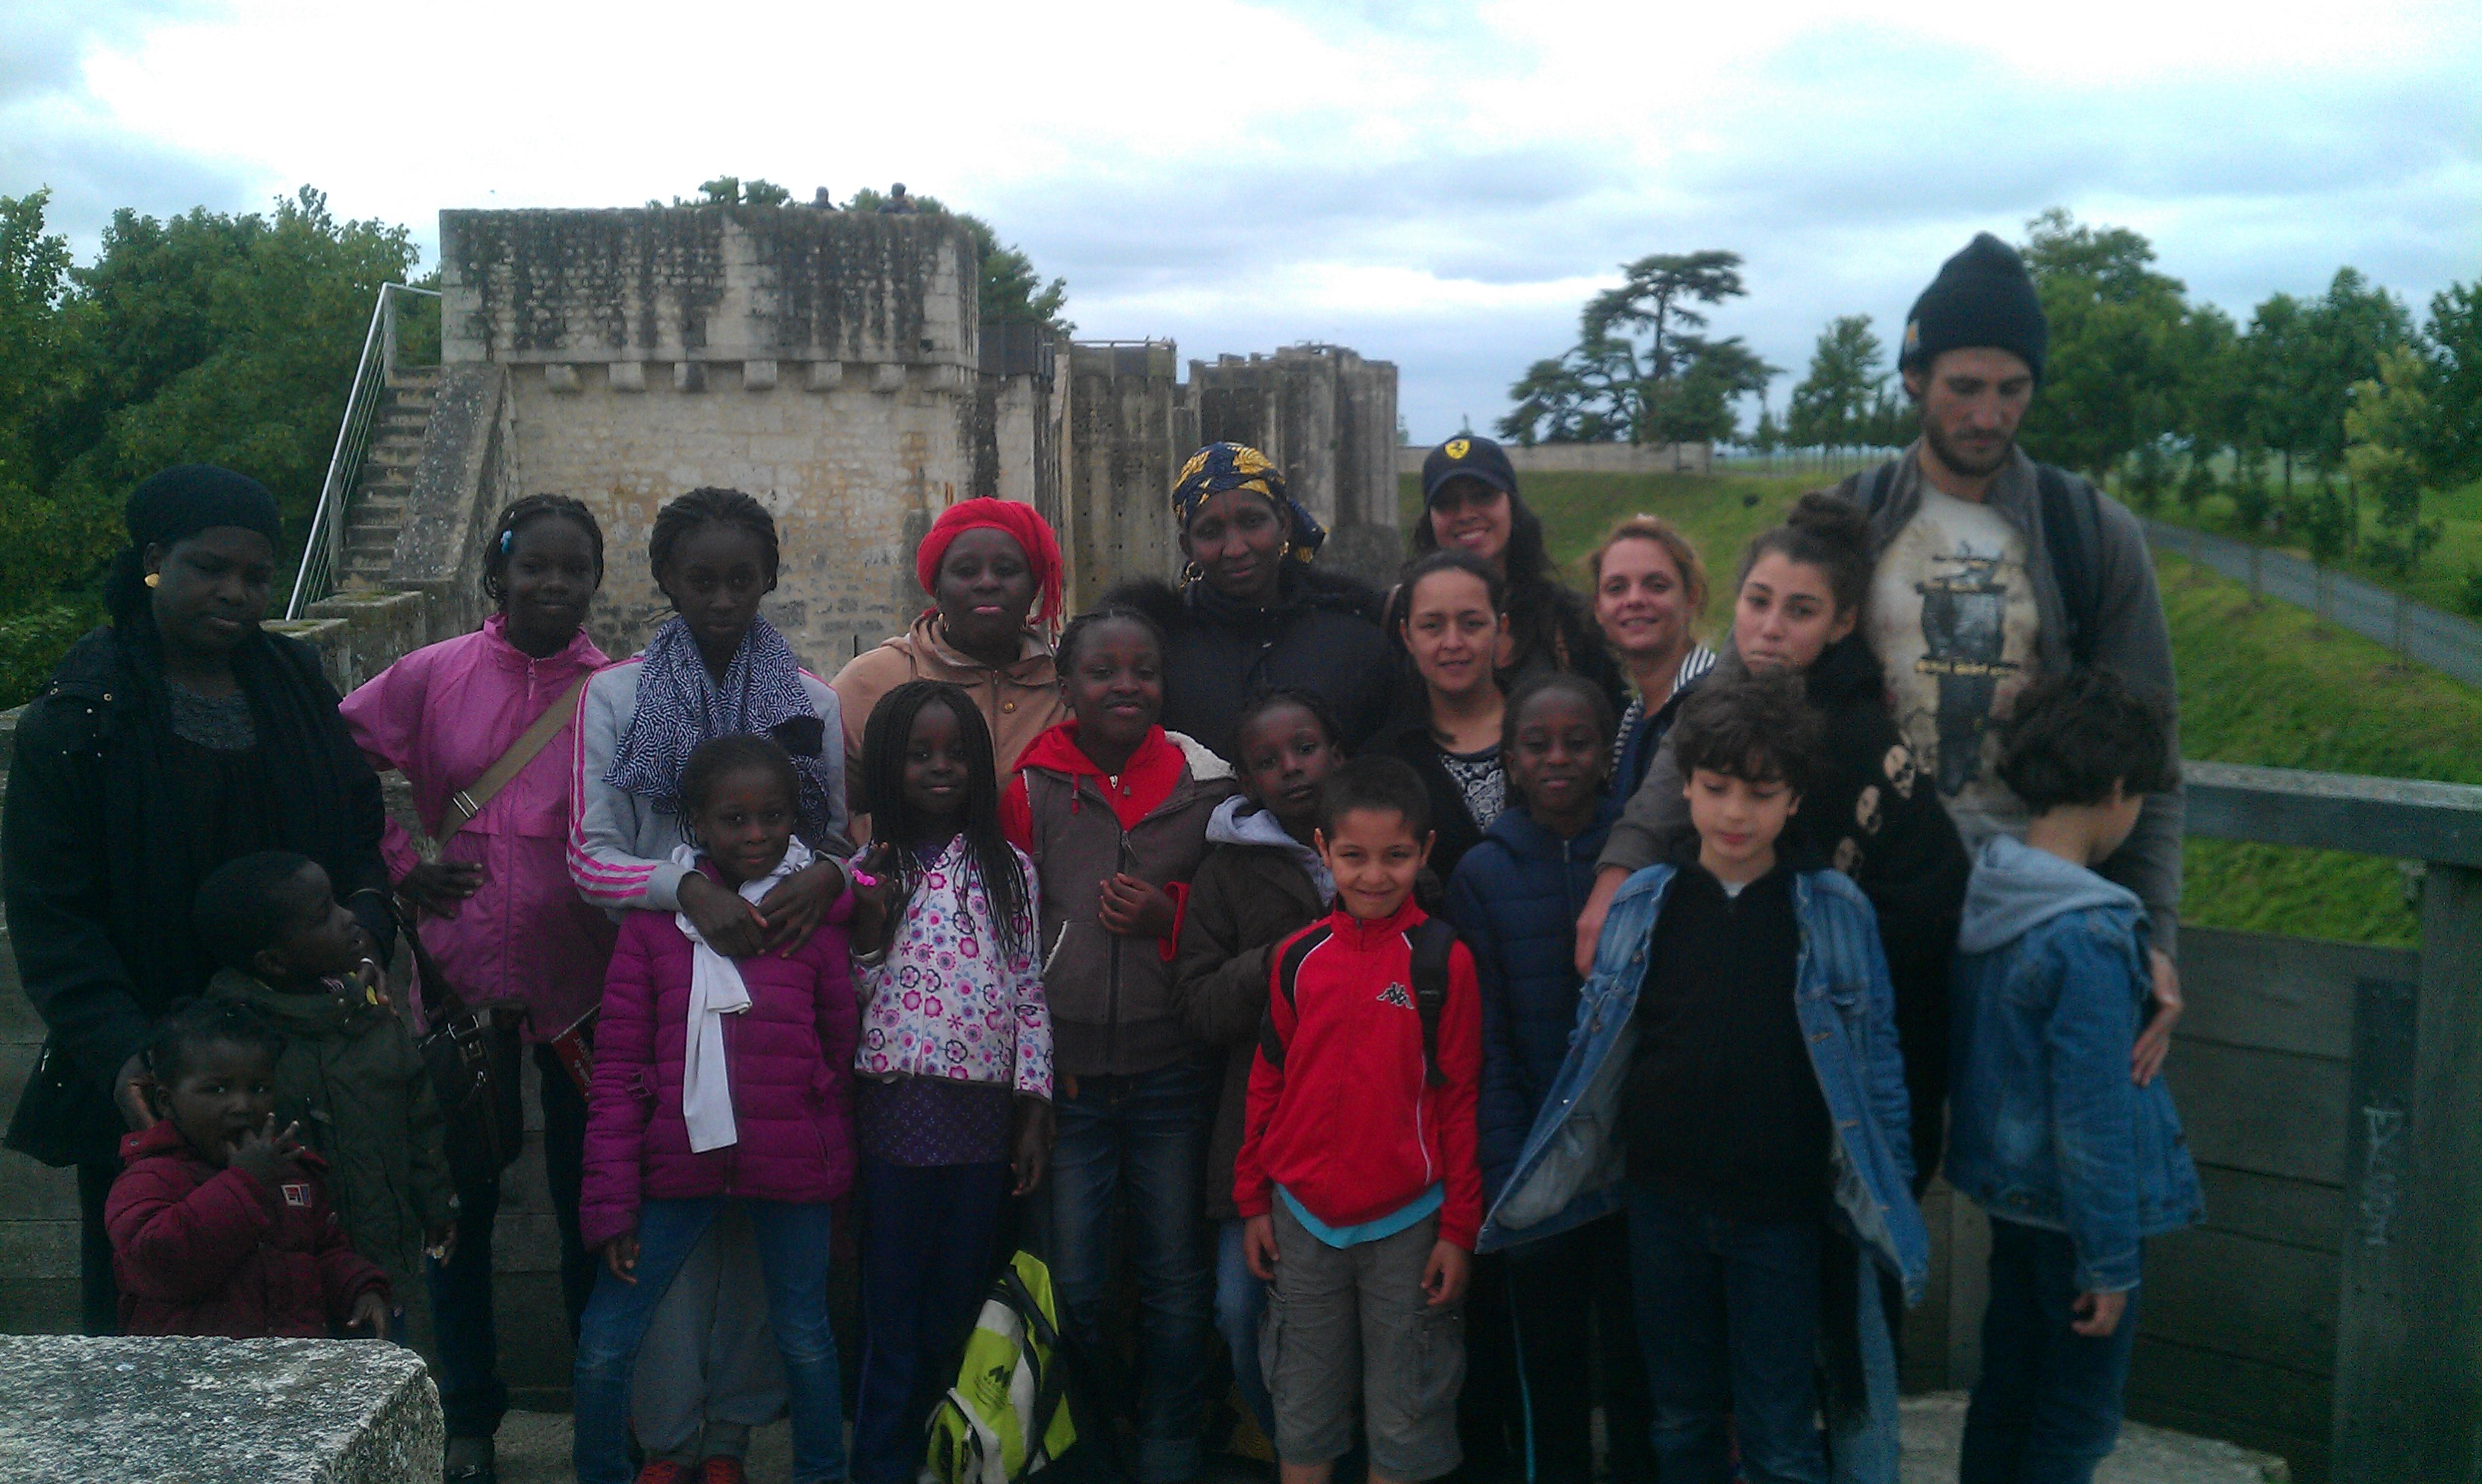 Sortie famille a provins for Sortie famille yvelines